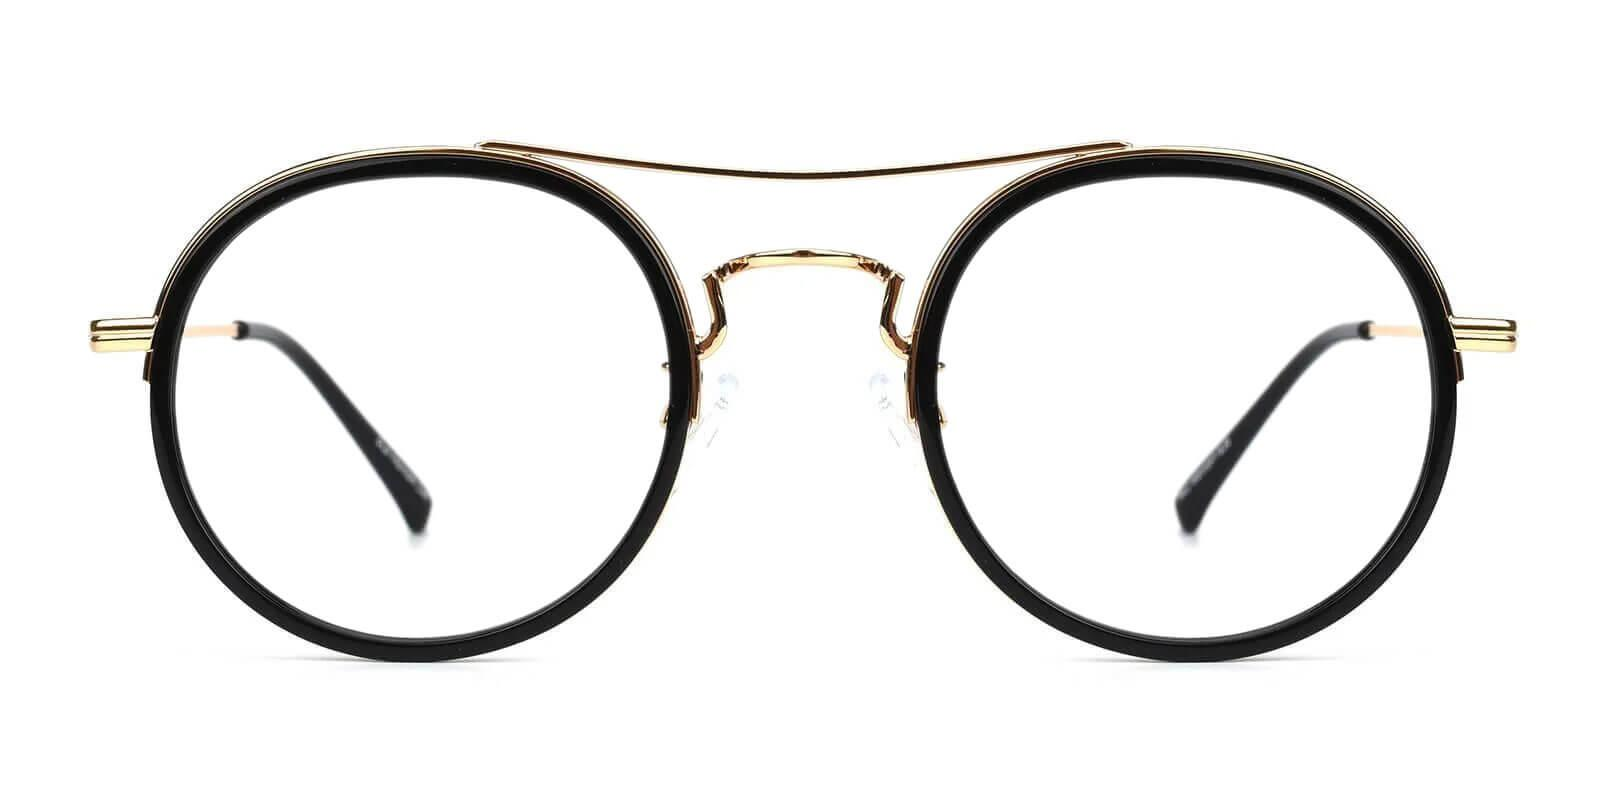 Coexist Gold Combination NosePads , SpringHinges , Eyeglasses Frames from ABBE Glasses